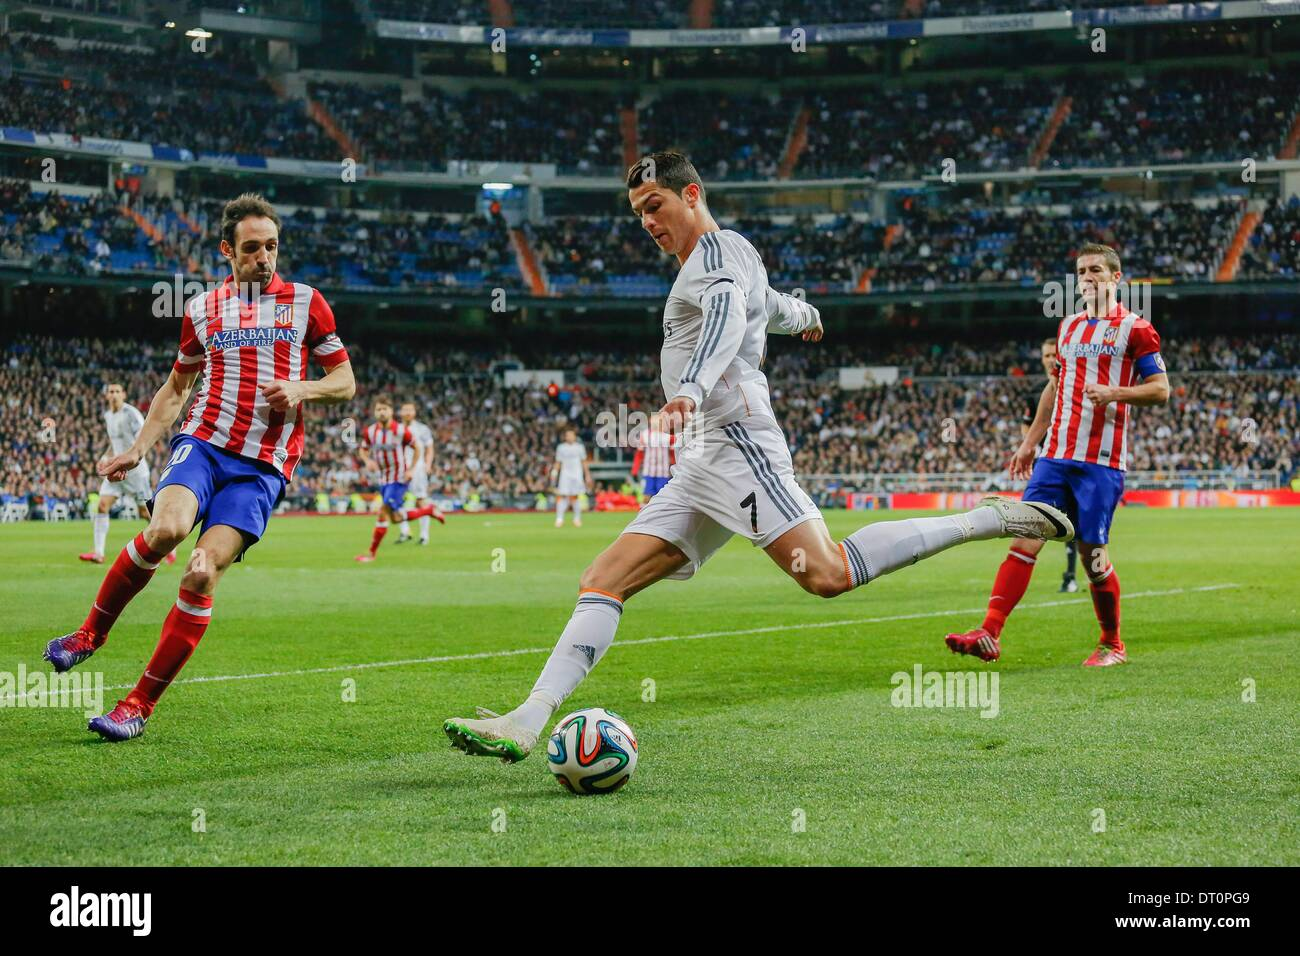 Madrid, Spain. 5th Feb, 2014. Cristiano Ronaldo (Real Madrid) during the Spanish King's Cup Semifinal, between Real Stock Photo